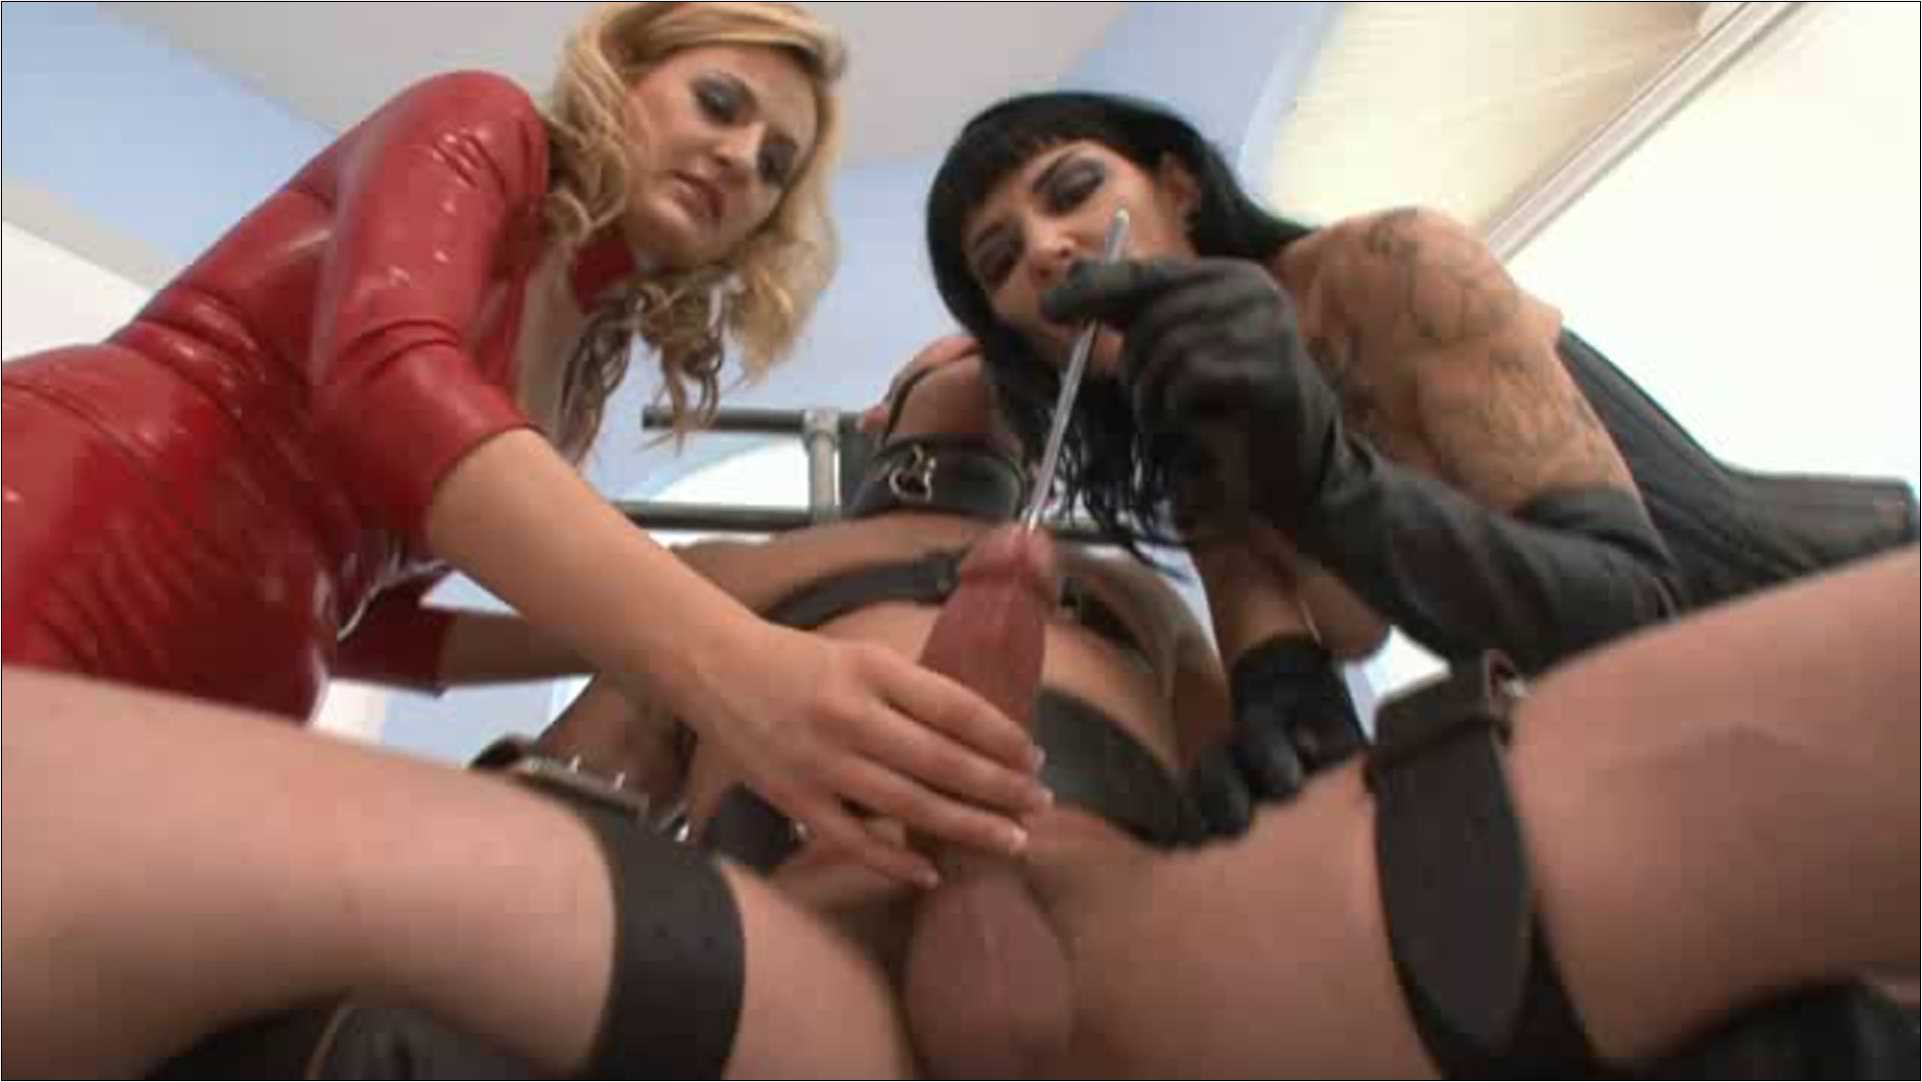 Natalia Starr, Simone Kross In Scene: Cock Fucked and Fed Hardcore - CLUBDOM / RUTHLESSVIXEN - FULL HD/1080p/MP4